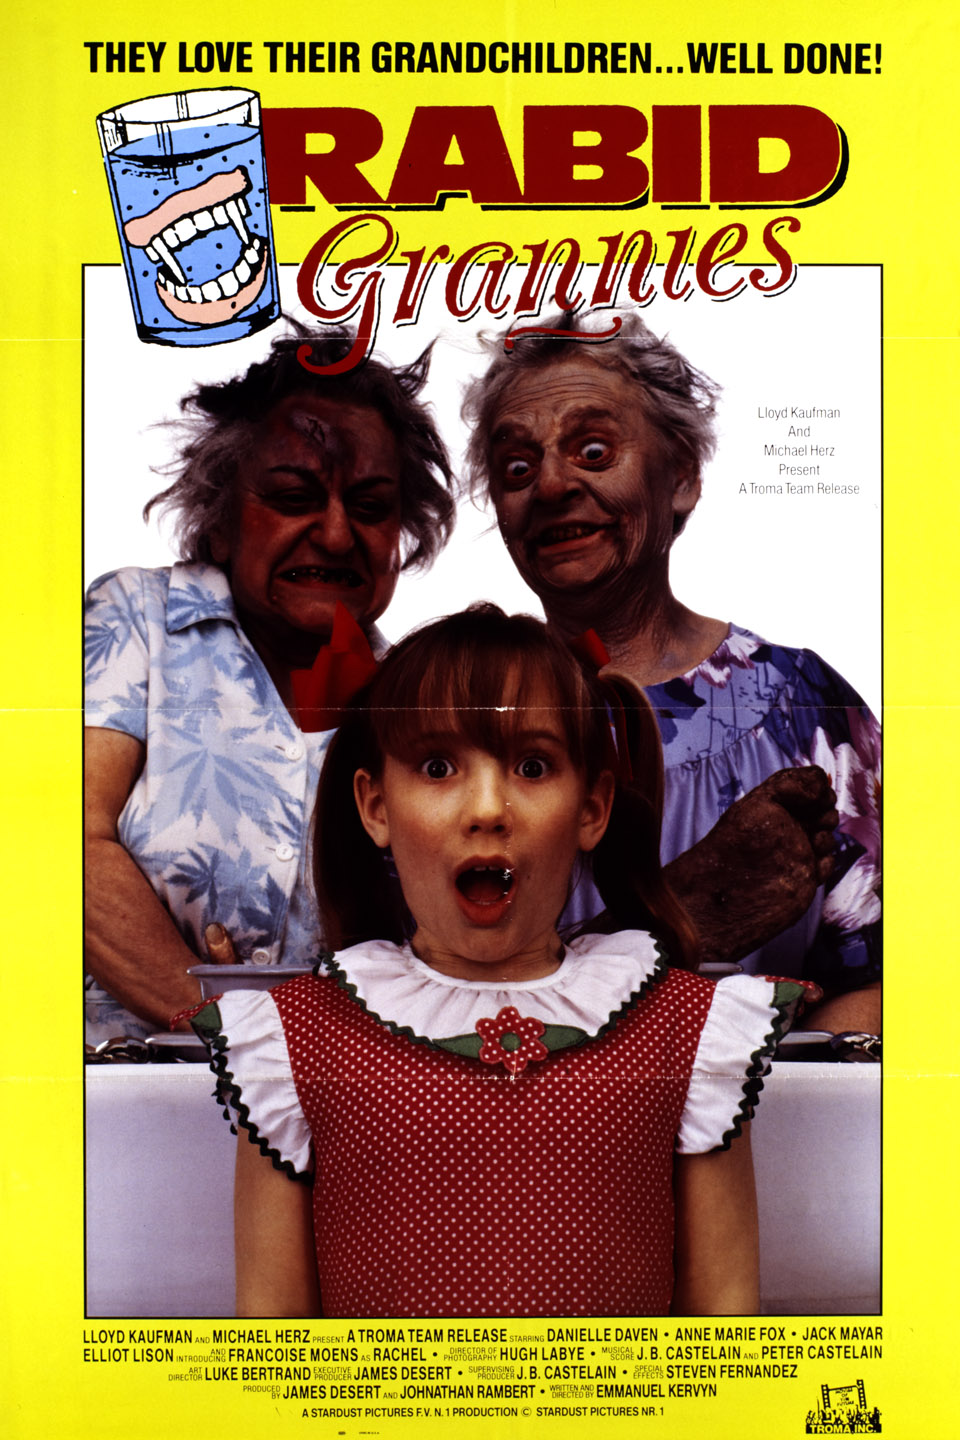 Rabid Grannies (1988) - Directed by: Emmanuel KervynStarring: Catherine Aymerie, Caroline Braeckman, Richard CoticaRated: RRunning Time: 1 h 29 mTMM Score: 2 stars out of 5STRENGTHS: Some Humor, Some EffectsWEAKNESSES: Pacing, Writing, Characters, Dialogue